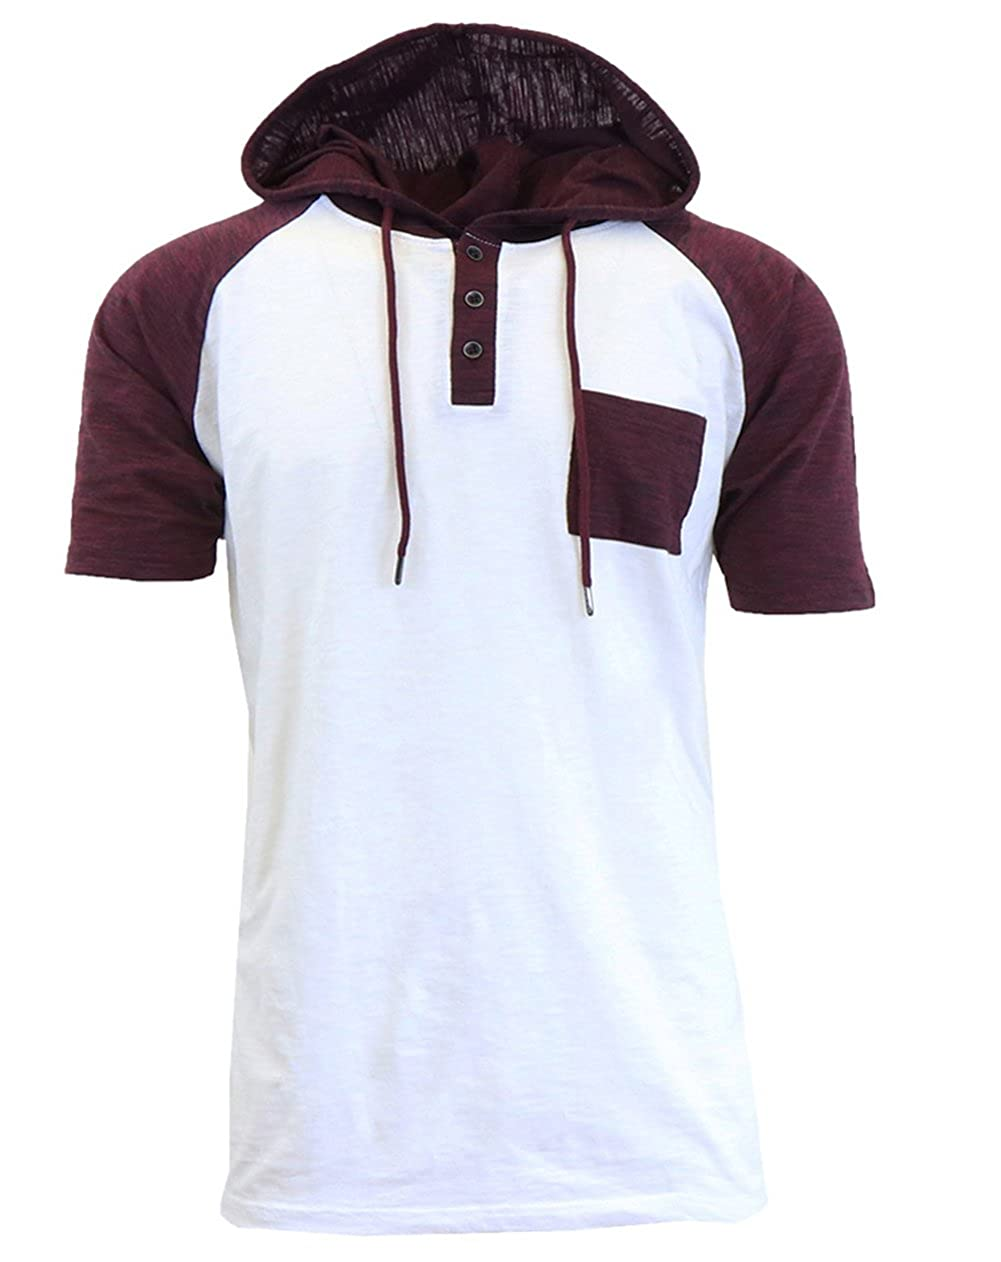 XARAZA Men's Short Sleeve Henley Neck Longline Hoodie T-Shirt